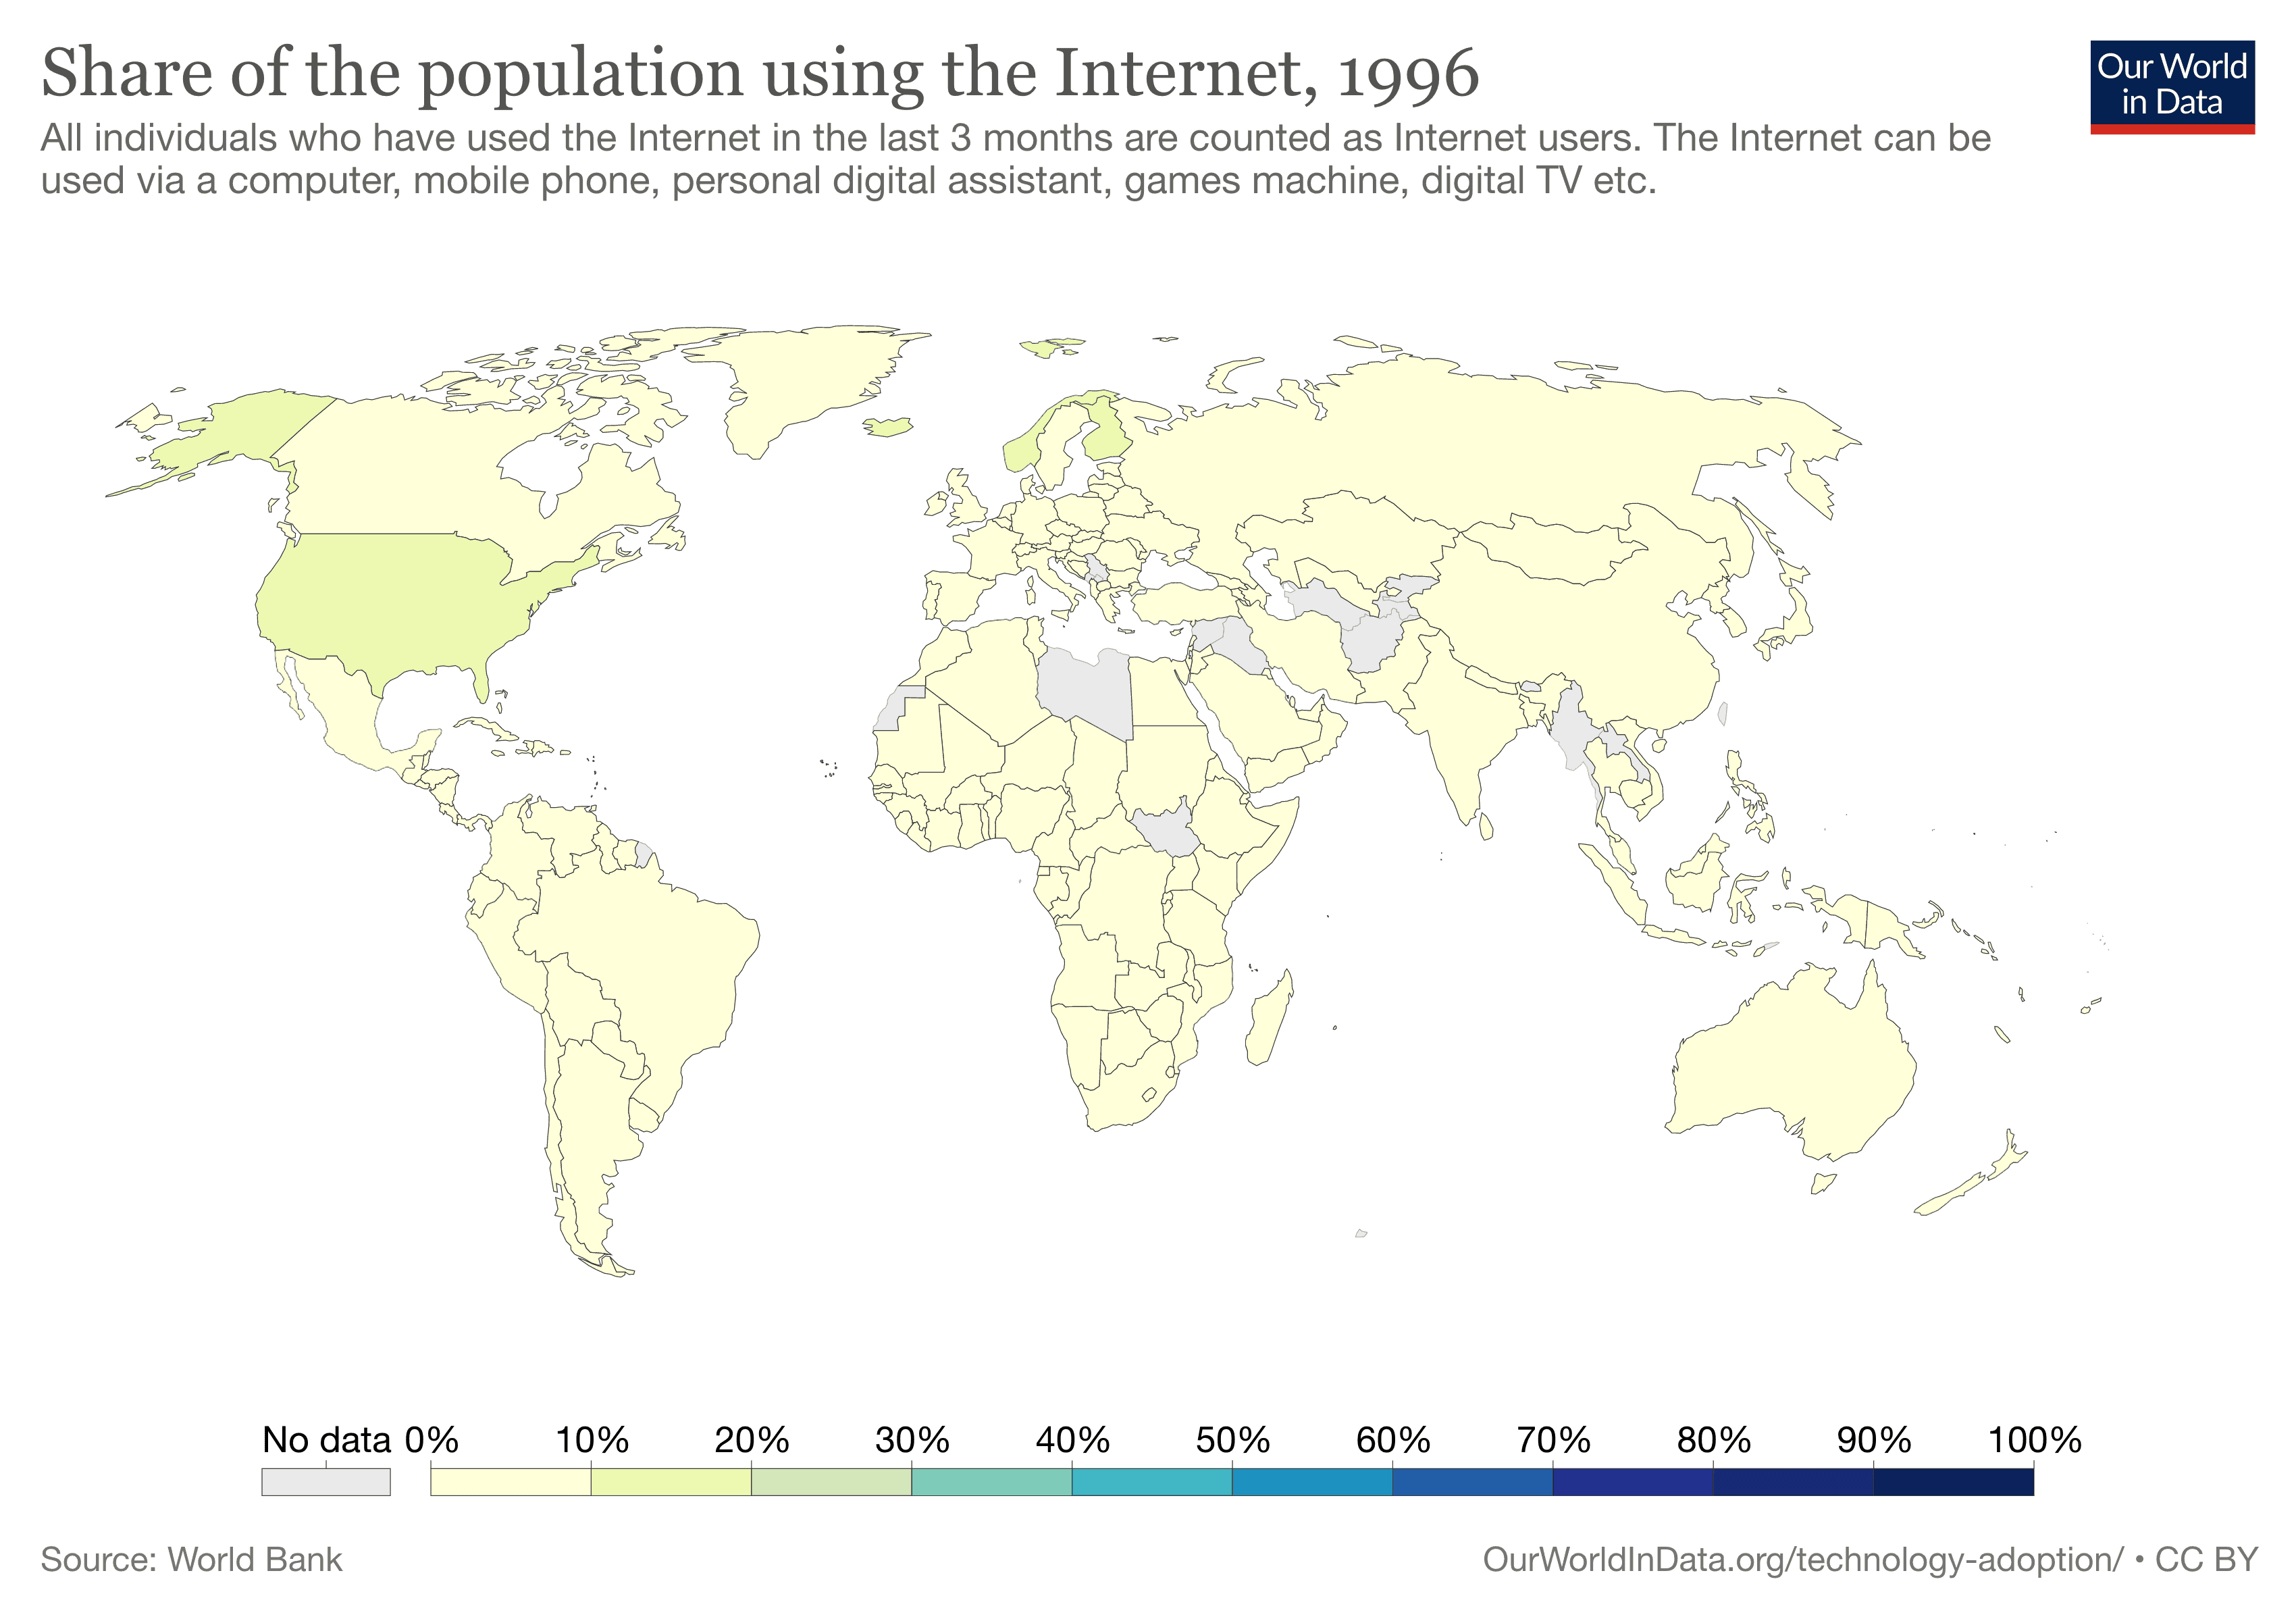 Individuals using the internet 1996